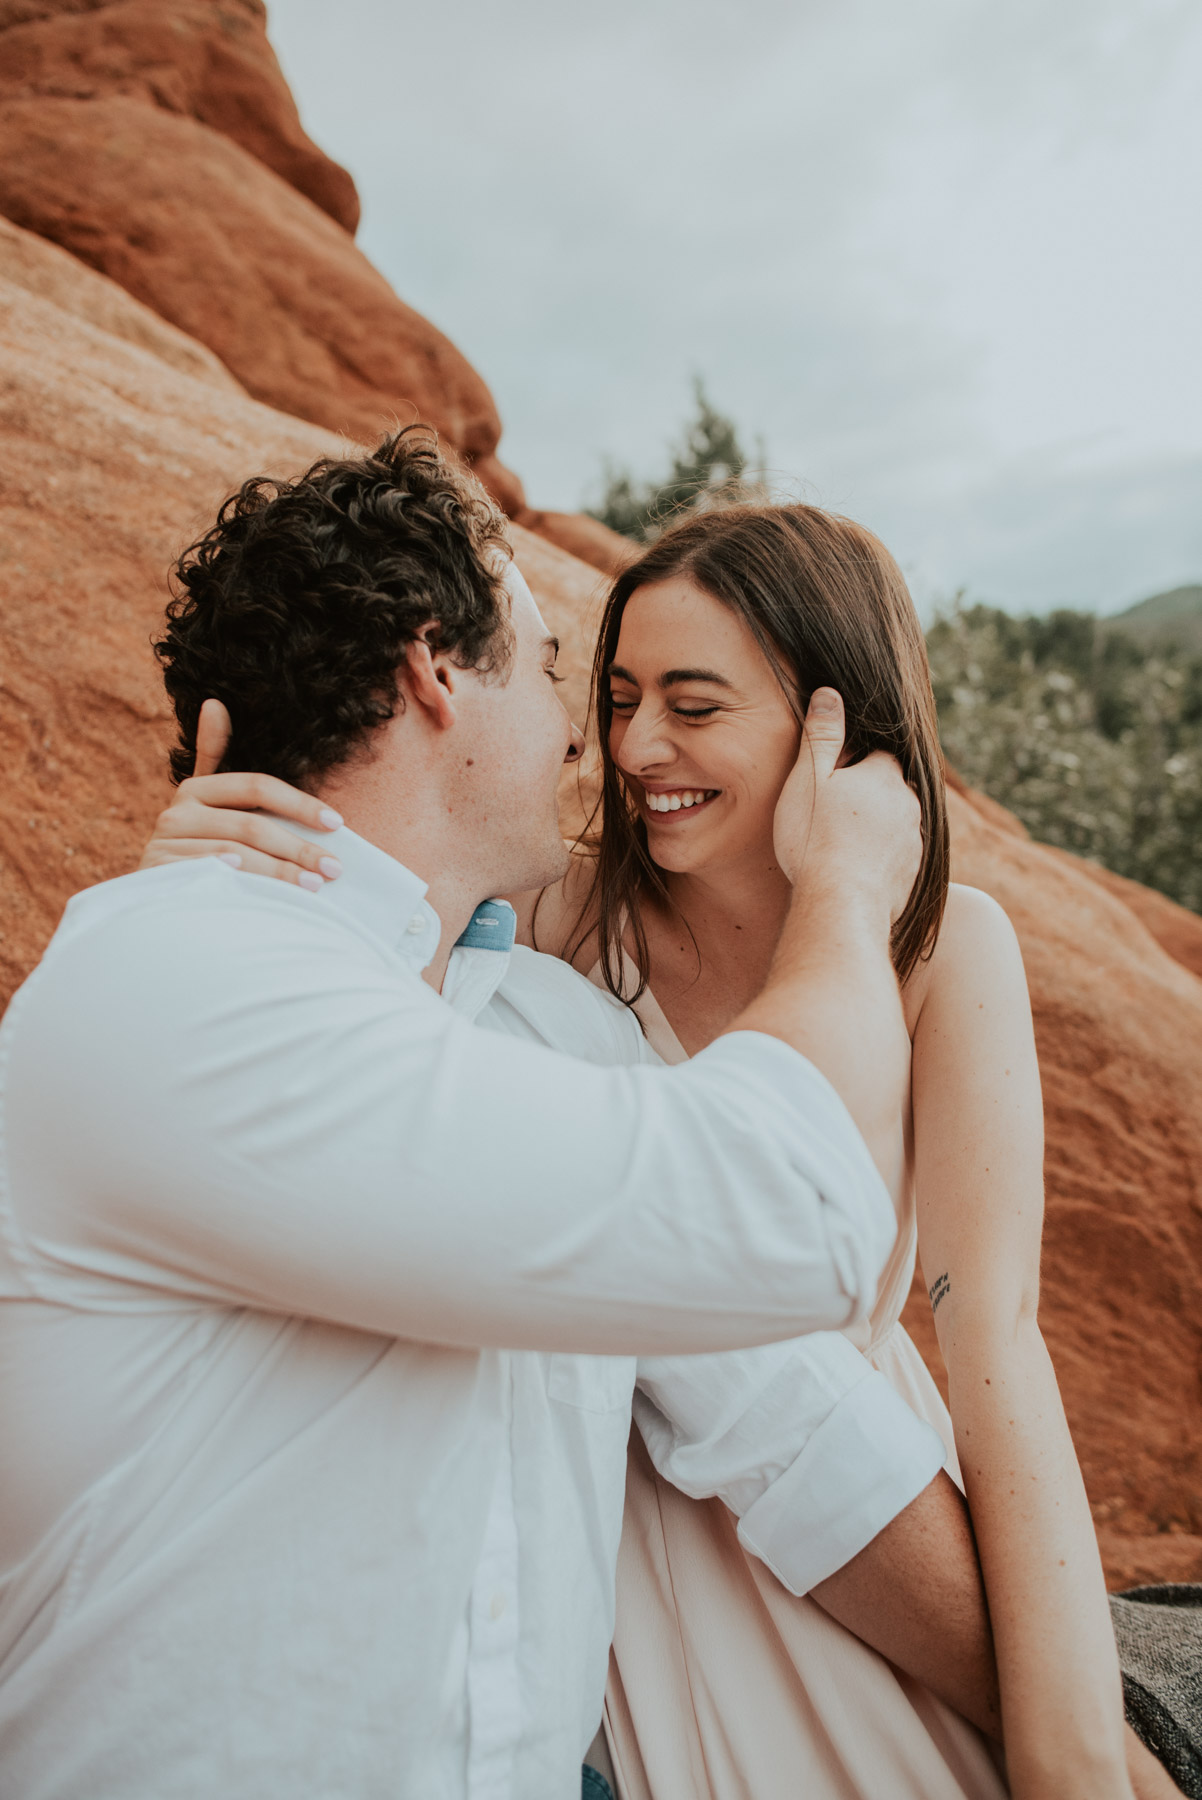 of course we started their engagement session at the penny arcade in manitou springs, colorado - of course. devyn + coleton are the giggliest silliest couple I have ever forced to hug for two hours so we needed the perfect spot to reflect that... arcades. duh.